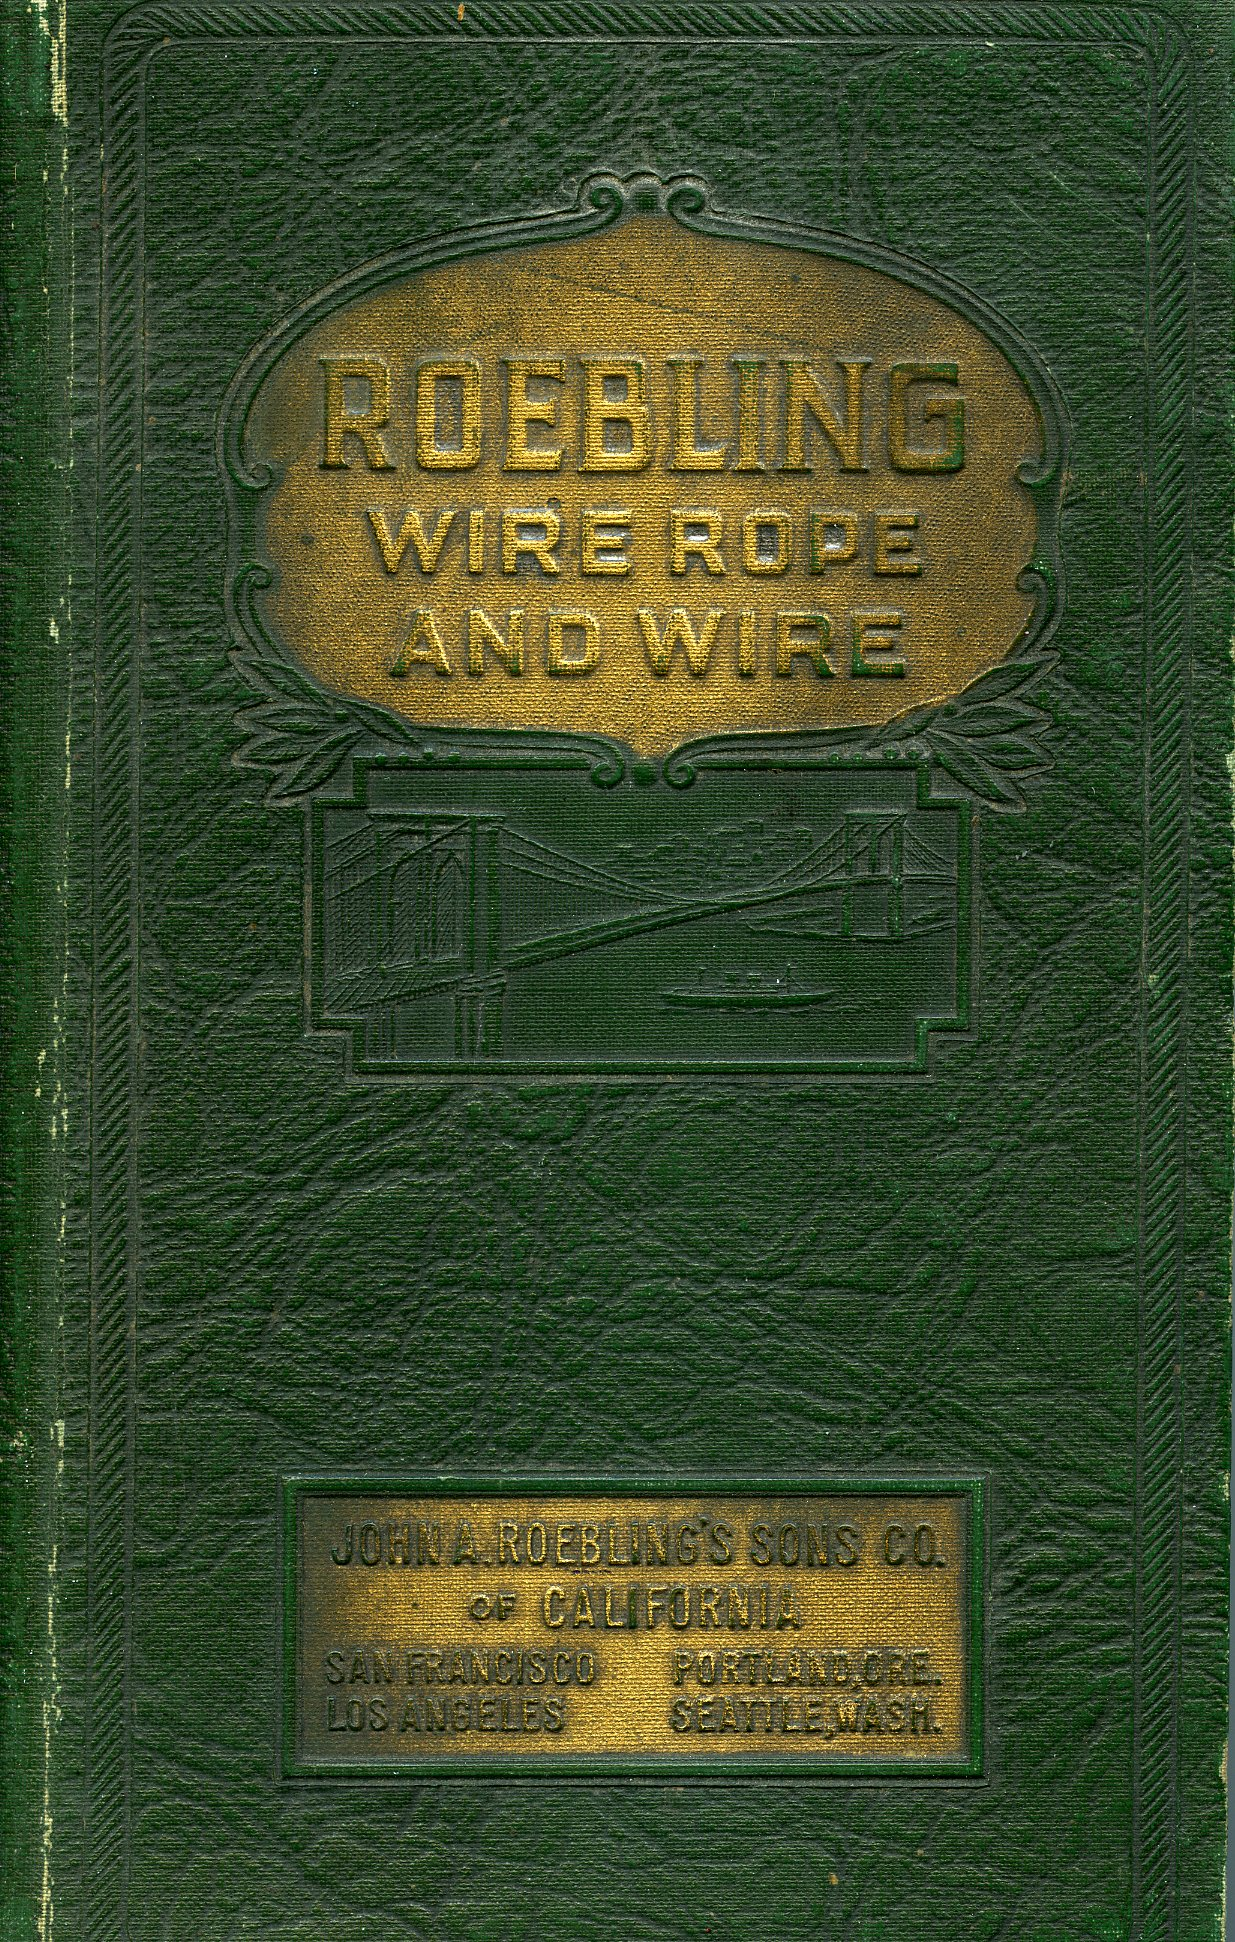 Roebling Wire Rope and Wire - Chandler Museum Archives